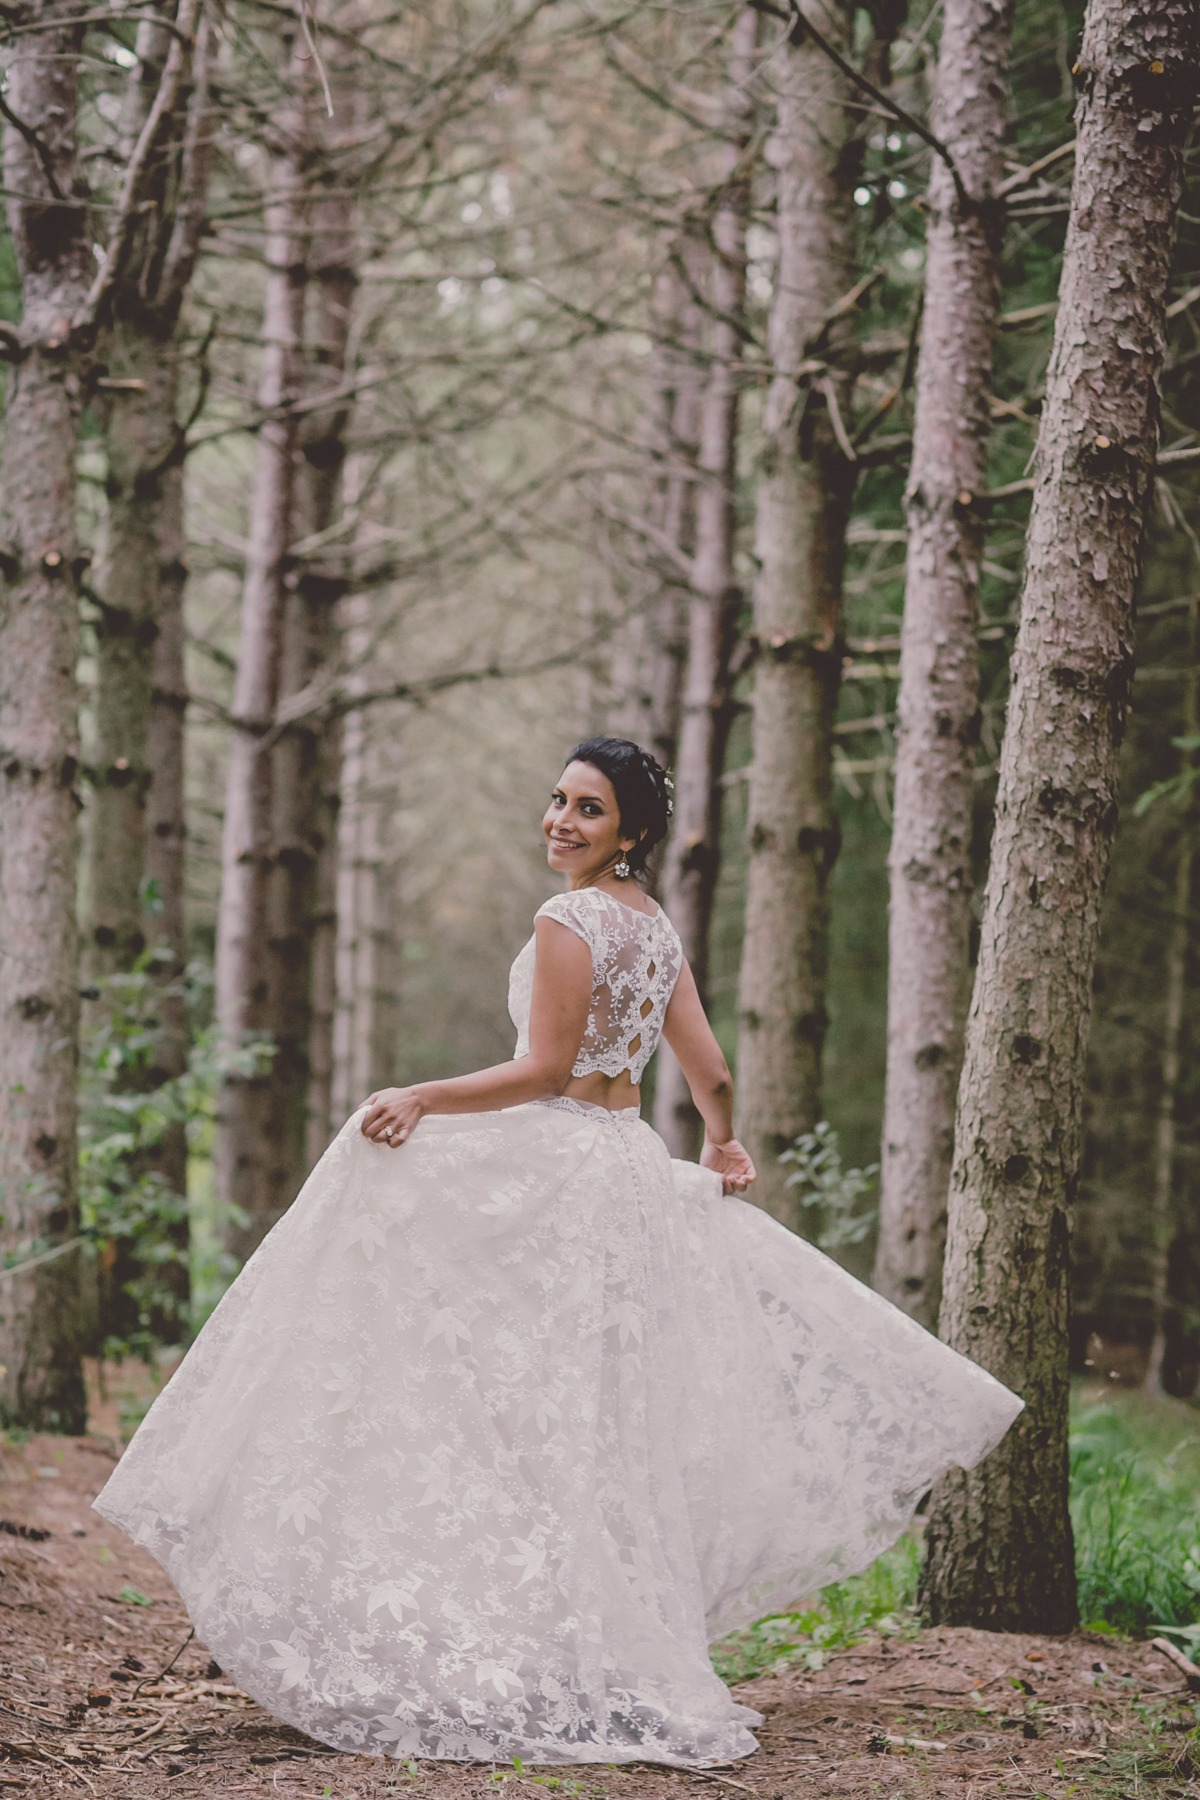 Abigail of Gardenia wedding dress